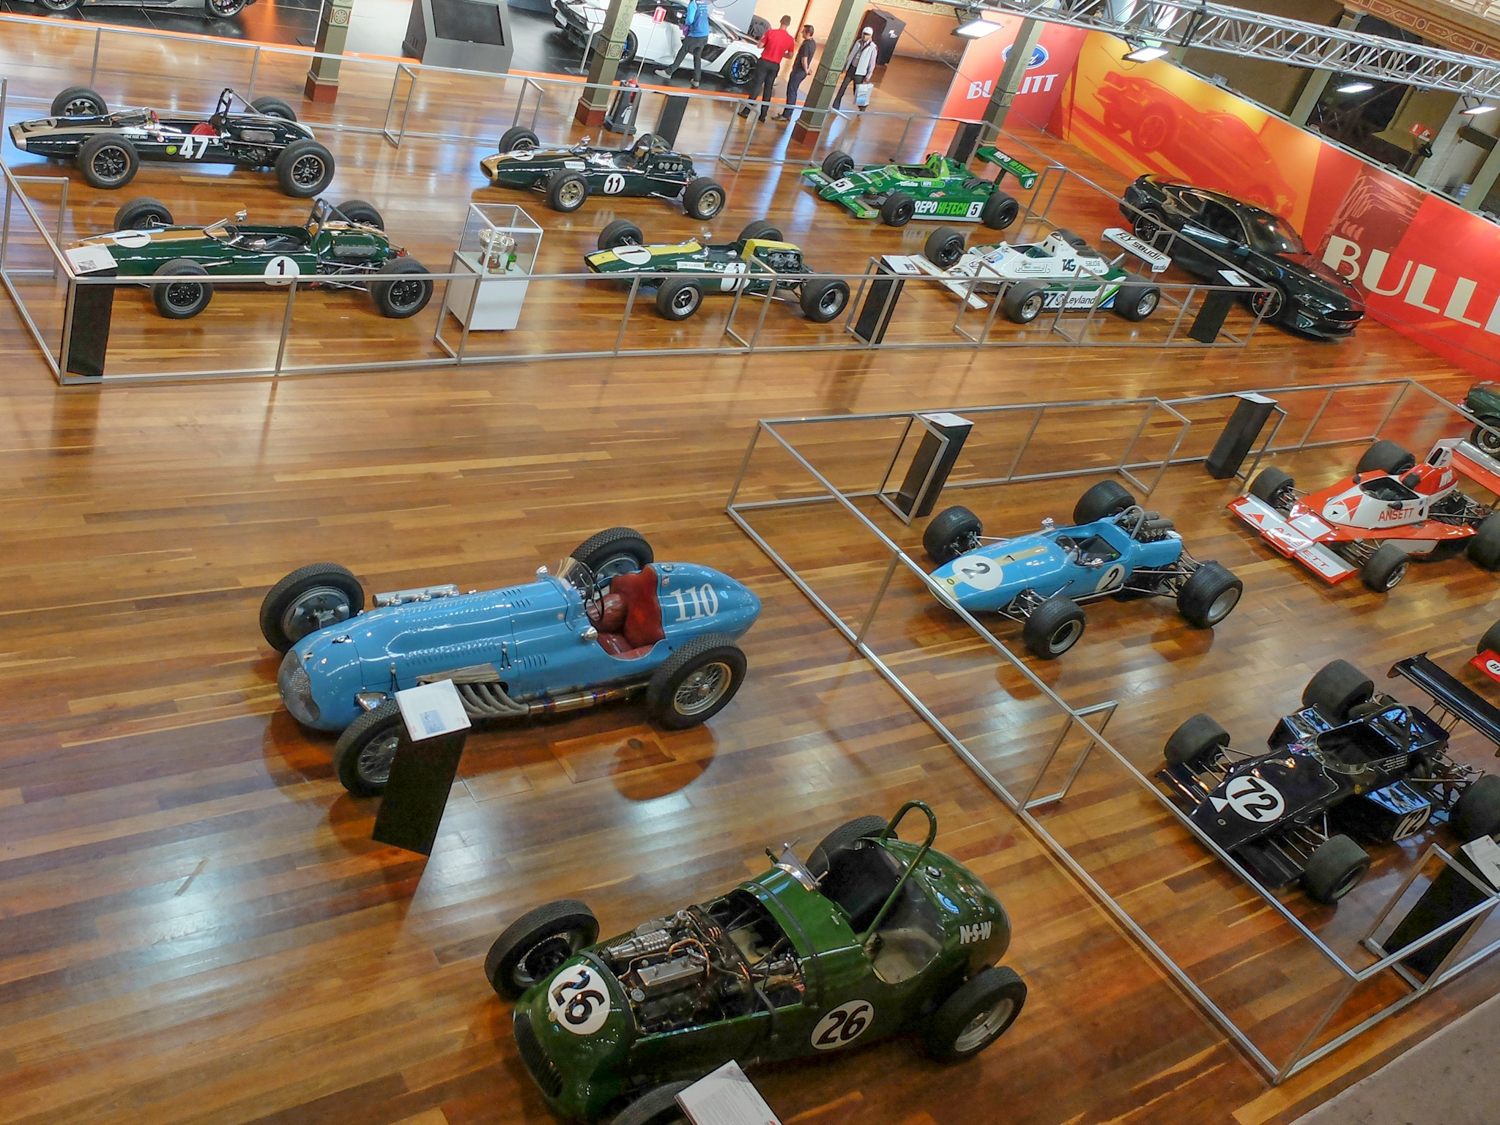 90 years of the Australian Grand Prix was celebrated in this display